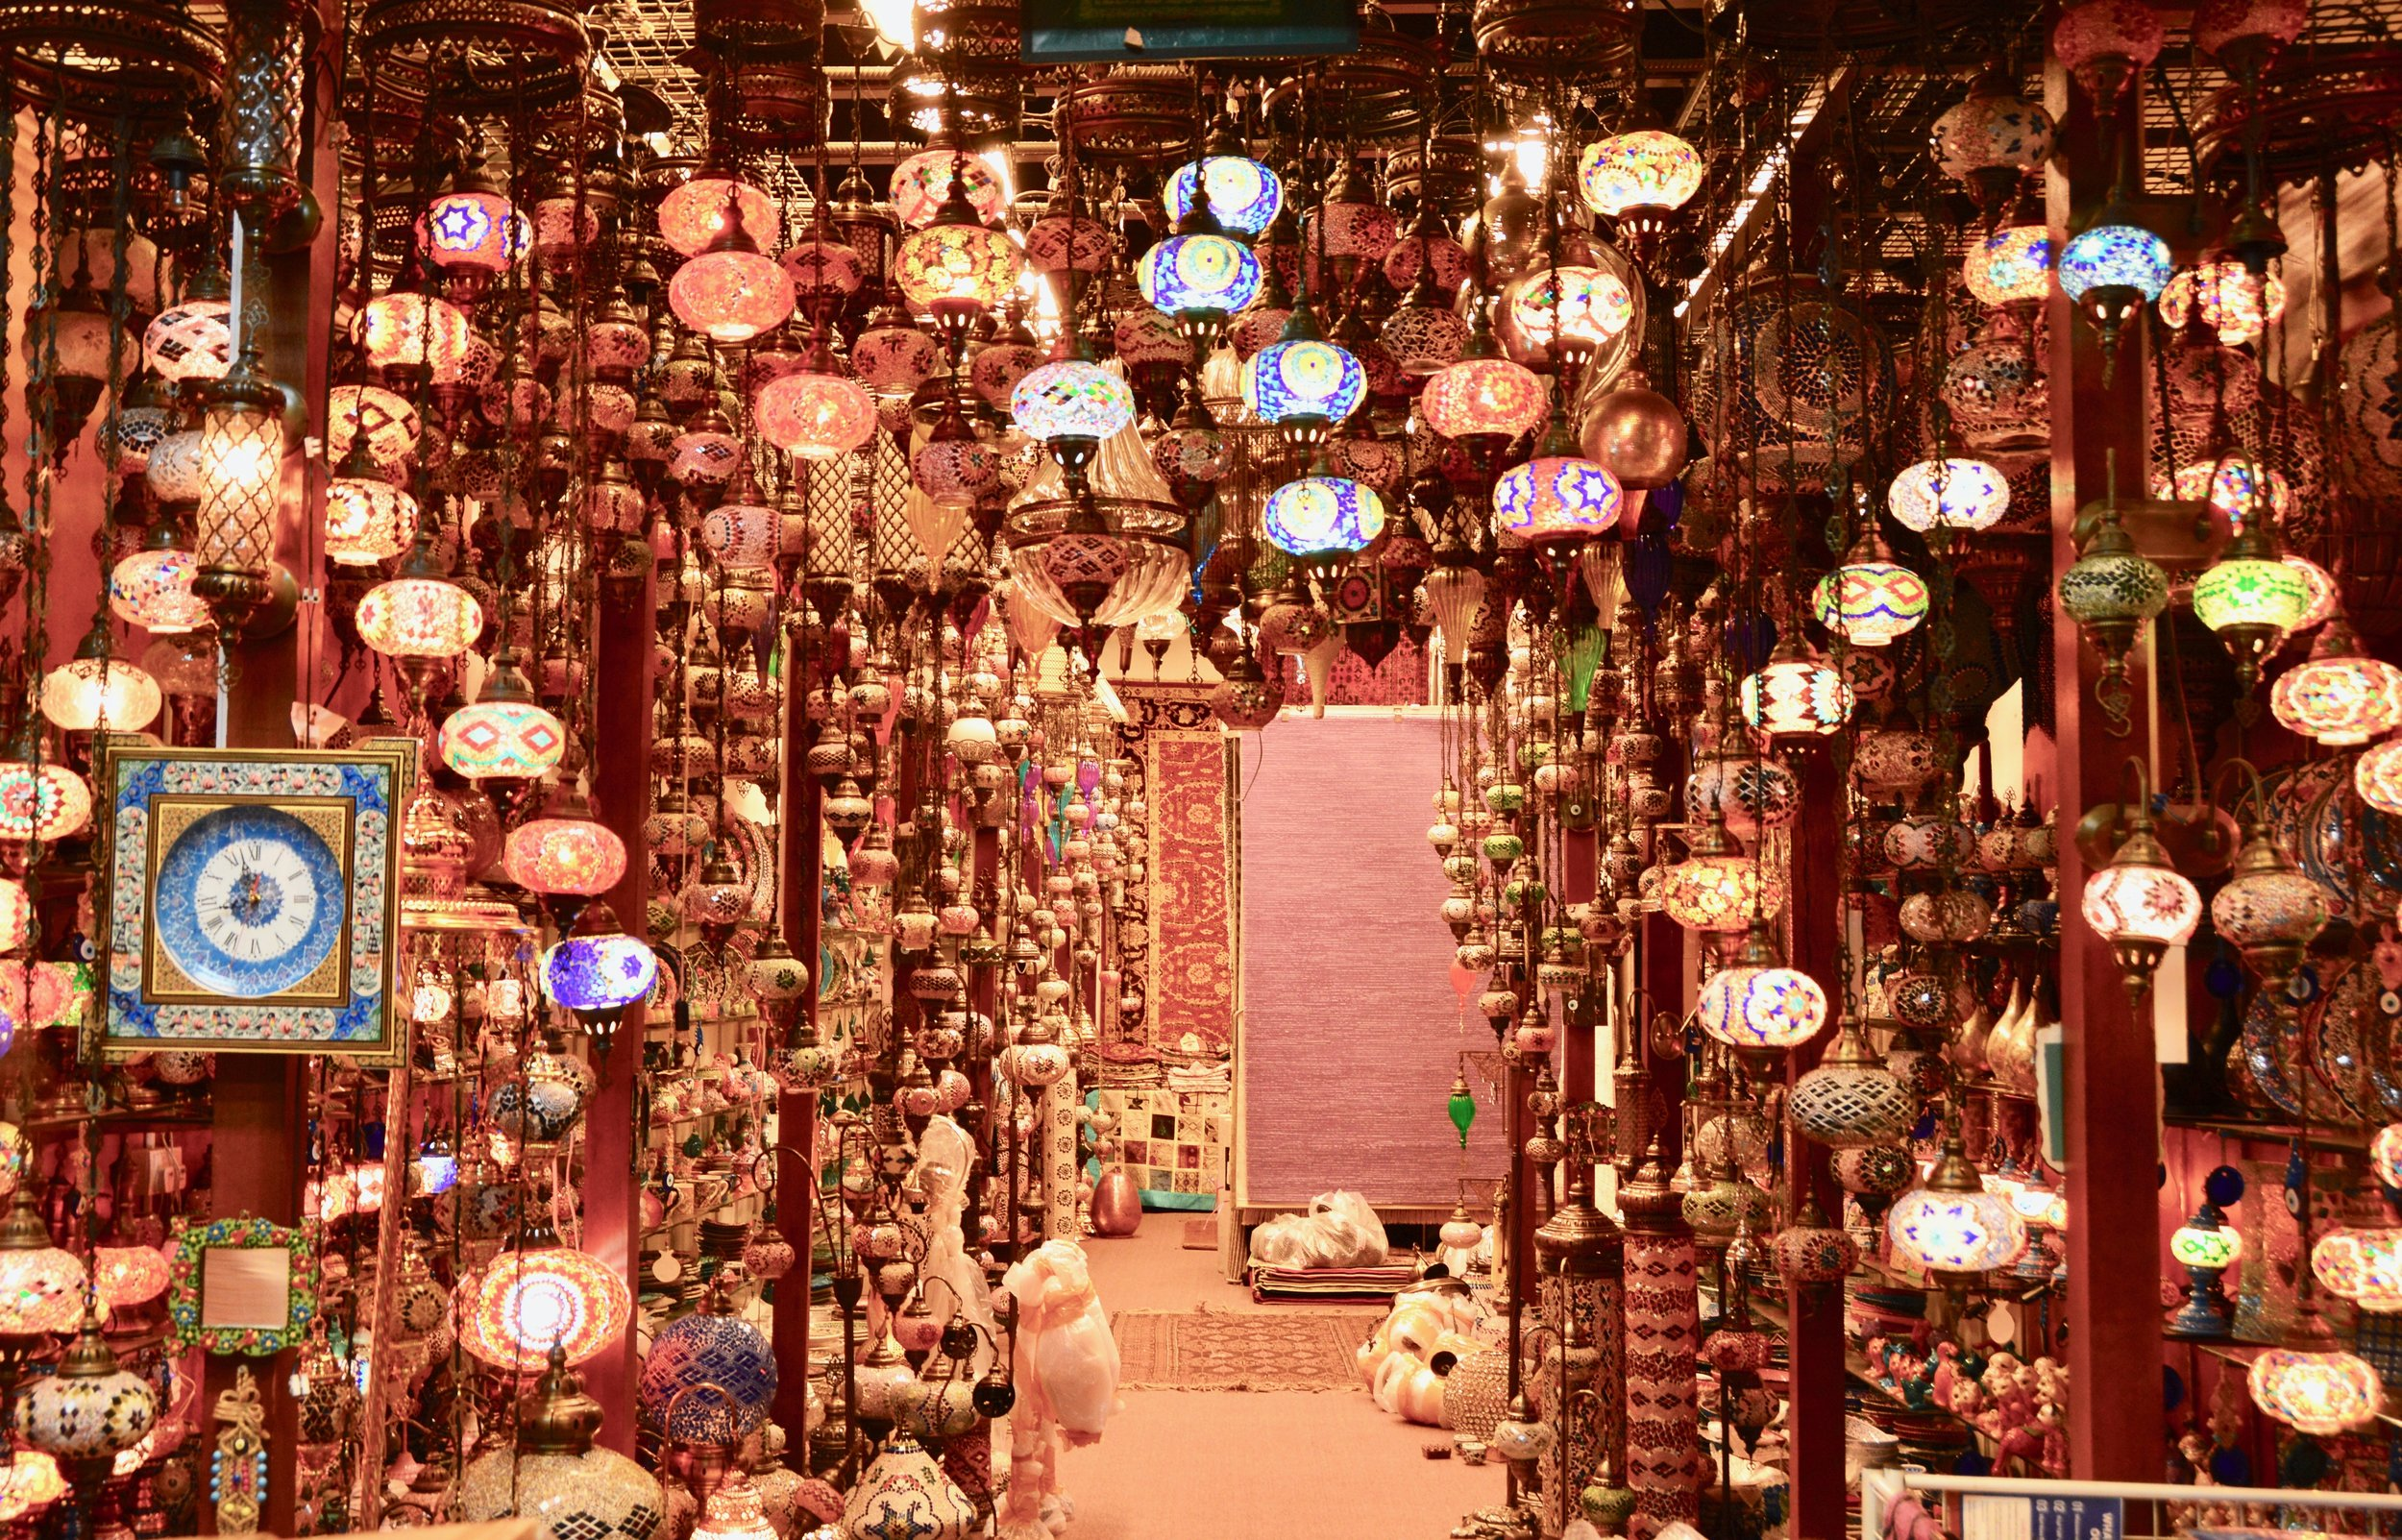 A visit would not be complete without strolling through a lamp store.